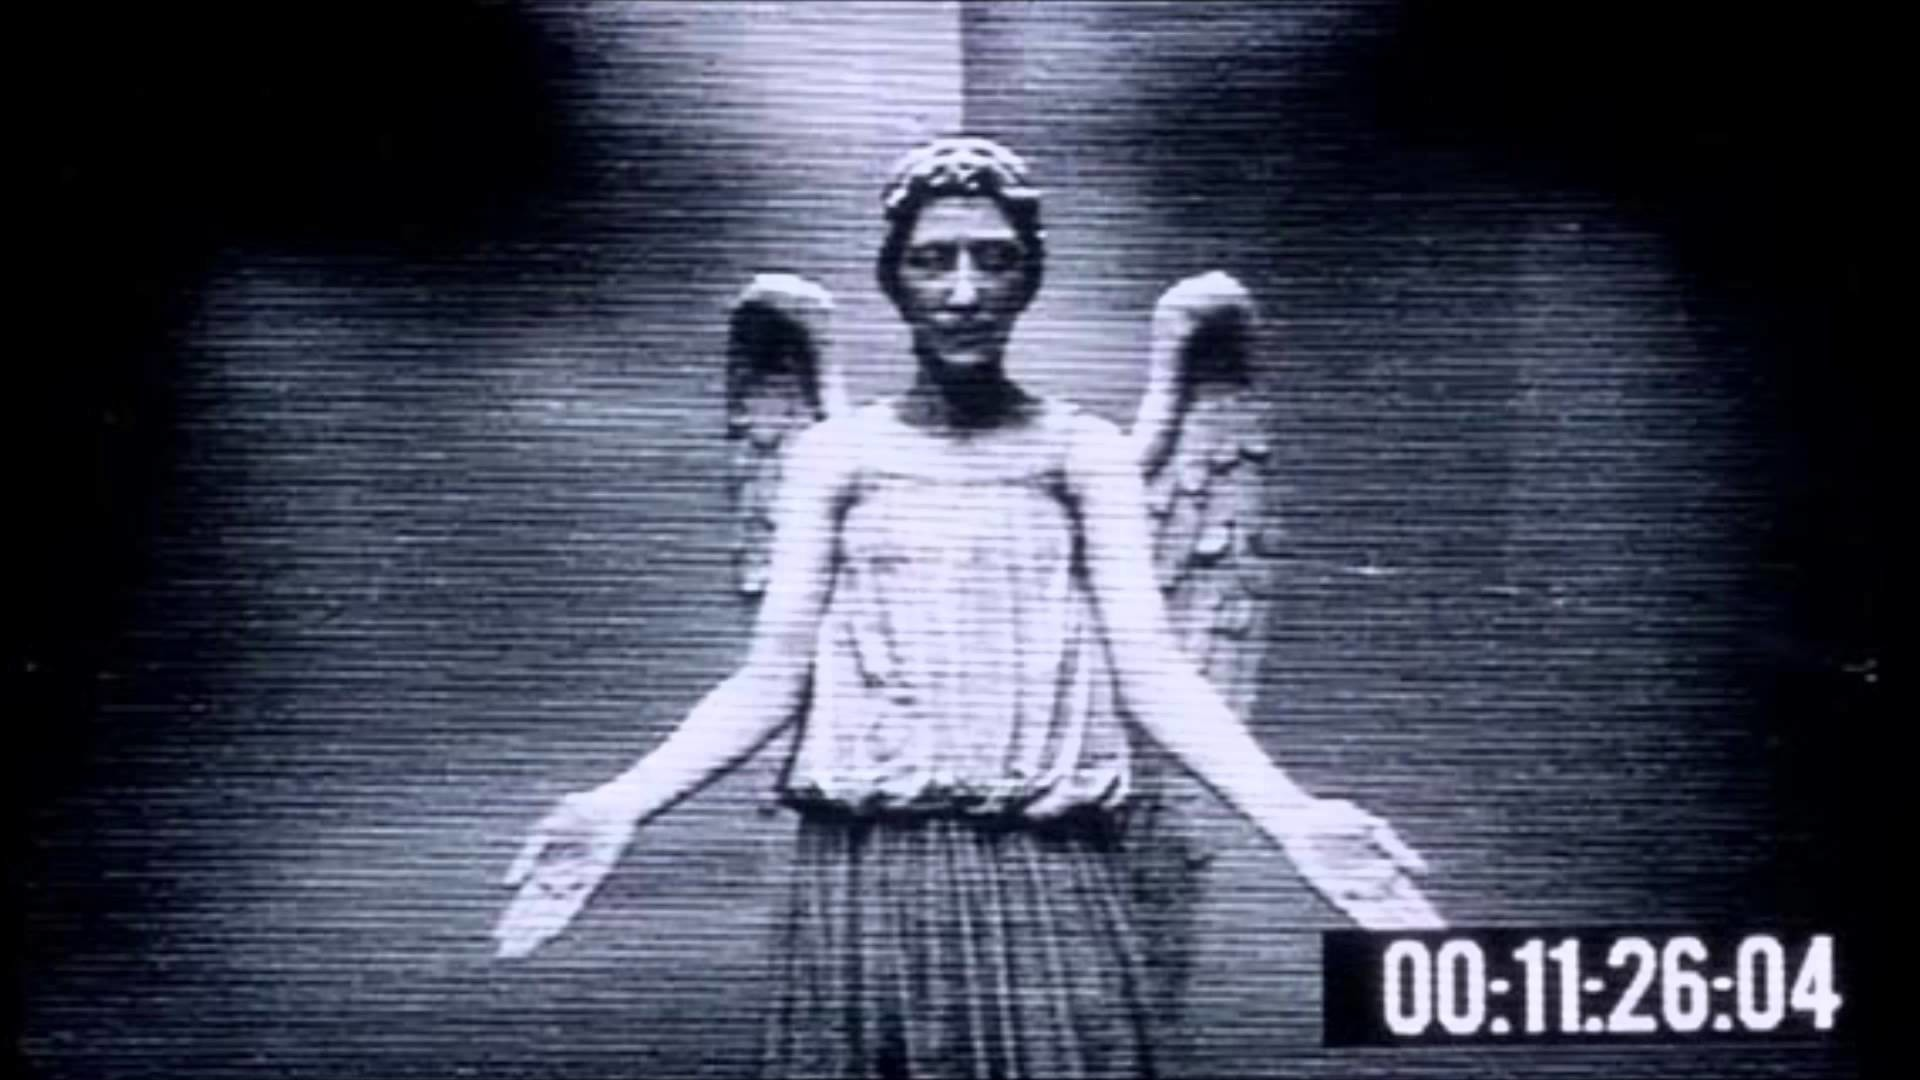 Doctor Who Weeping Angels Wallpaper 68 Images